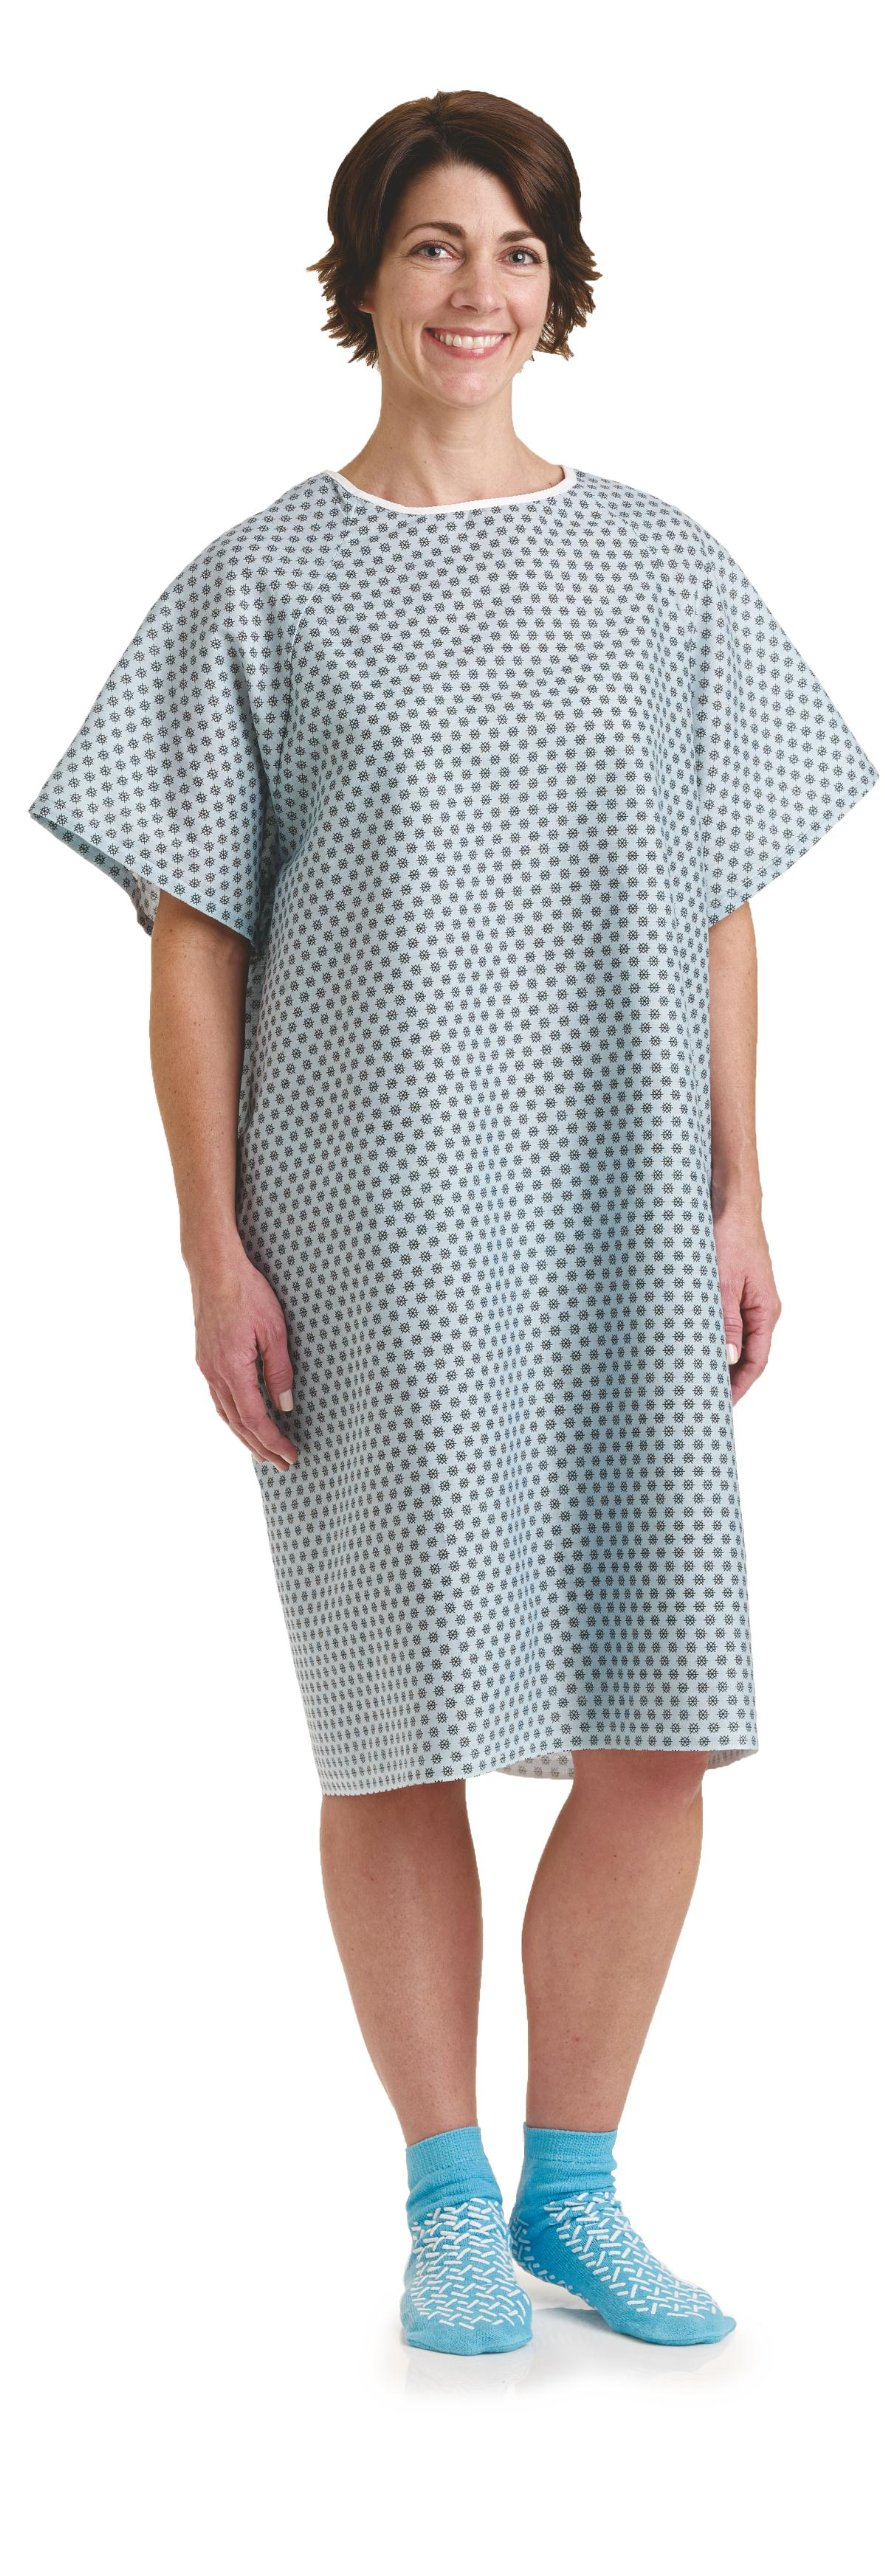 BHmedwear Traditional Patient Unisex Hospital Gown 3 PACK (Star Blue)